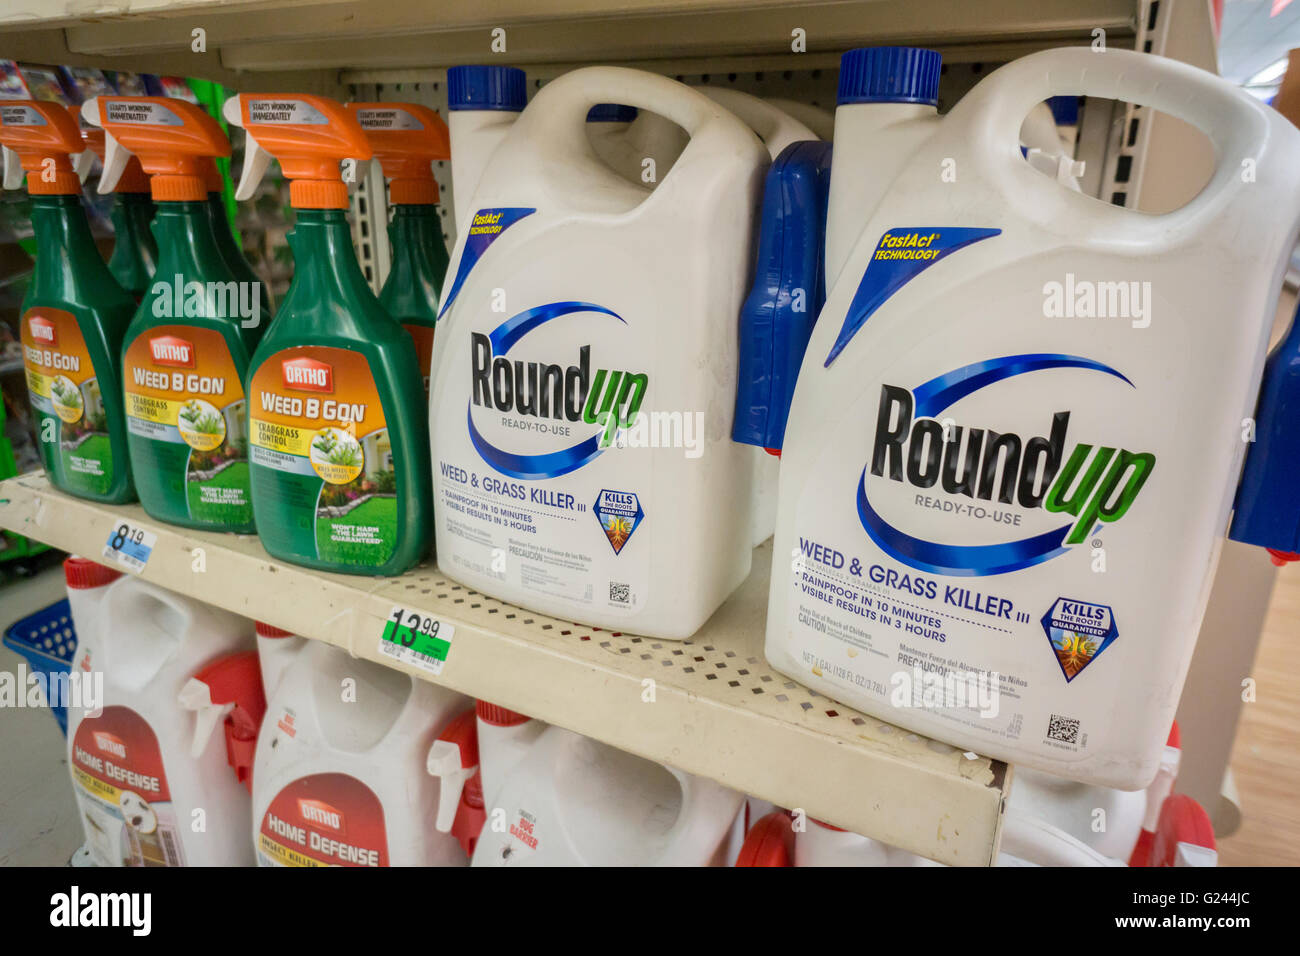 Good Containers Of Monsanto Roundup Weed Killer On A Garden Supply Store Shelf  In New York On Monday, May 23, 2016. Bayer AG, The German Pharmaceutical  And ...